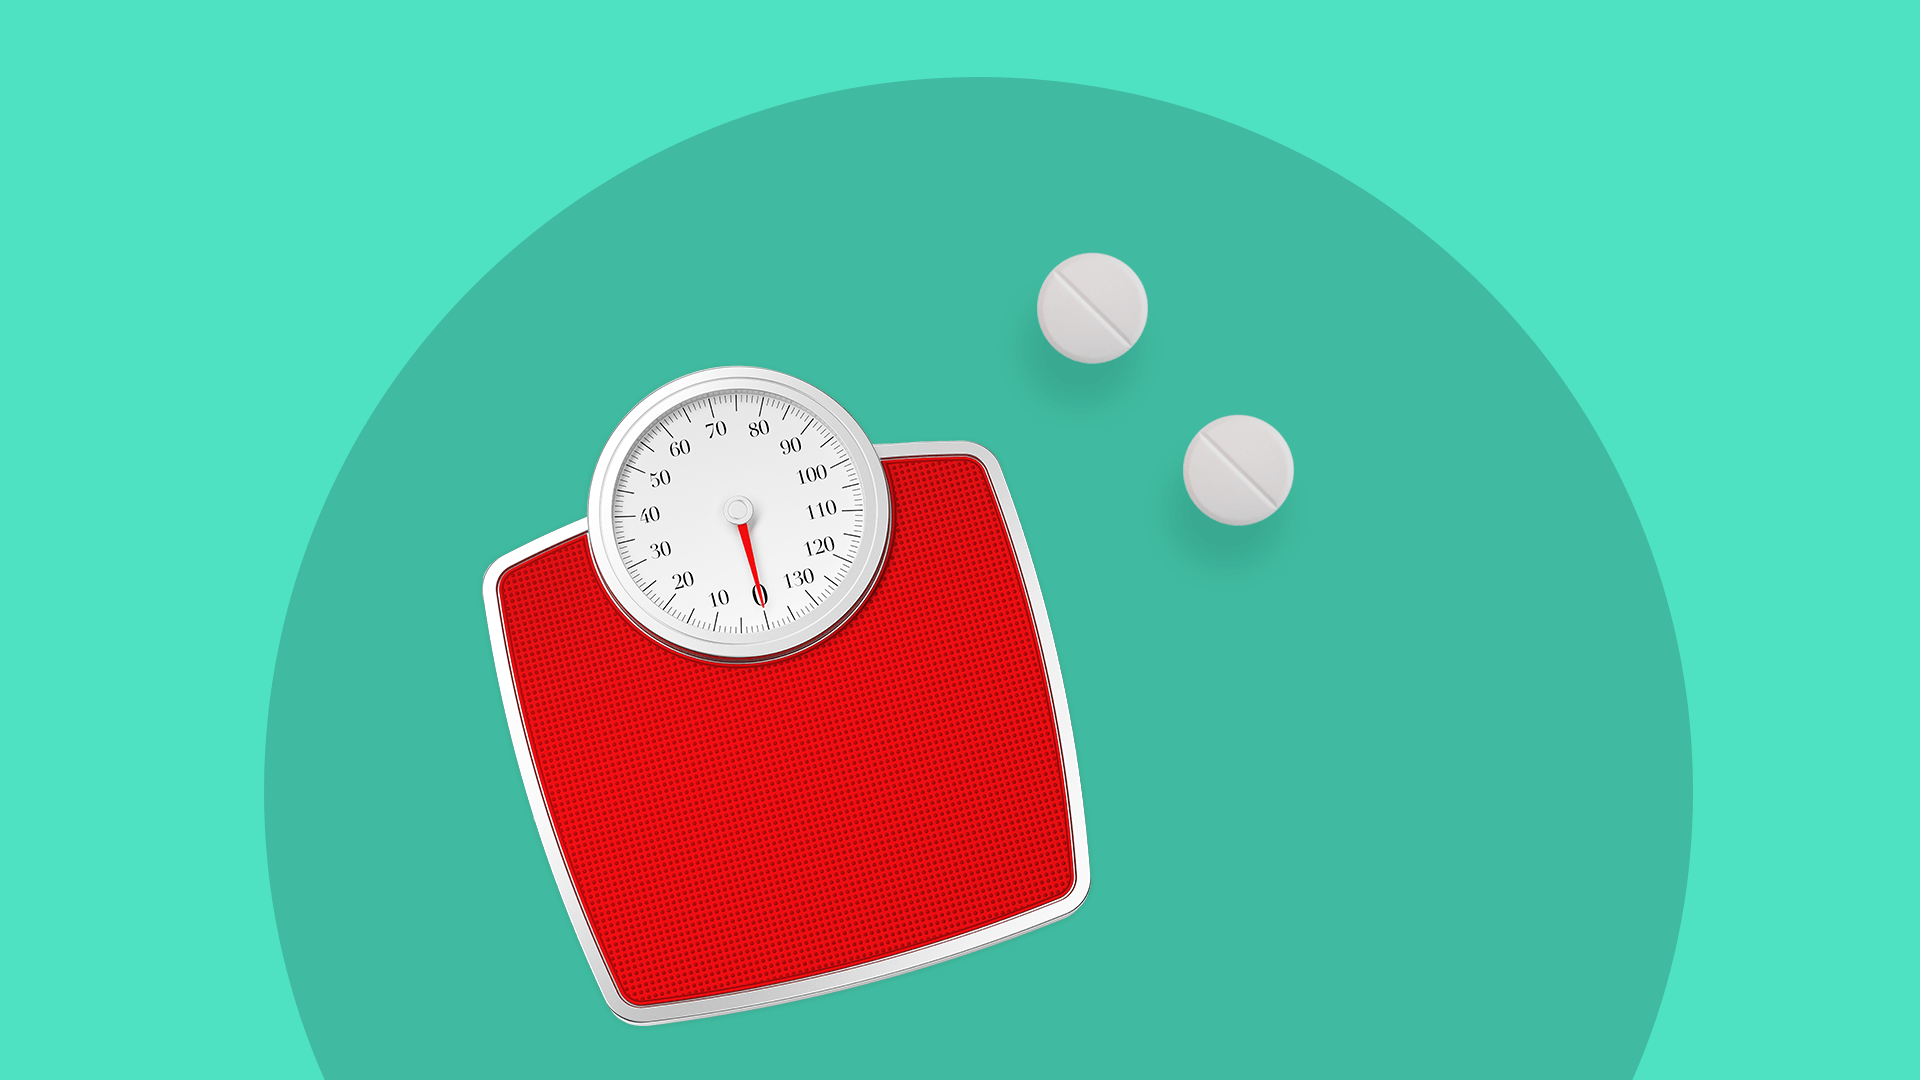 Topamax for weight loss: See safety and efficacy info